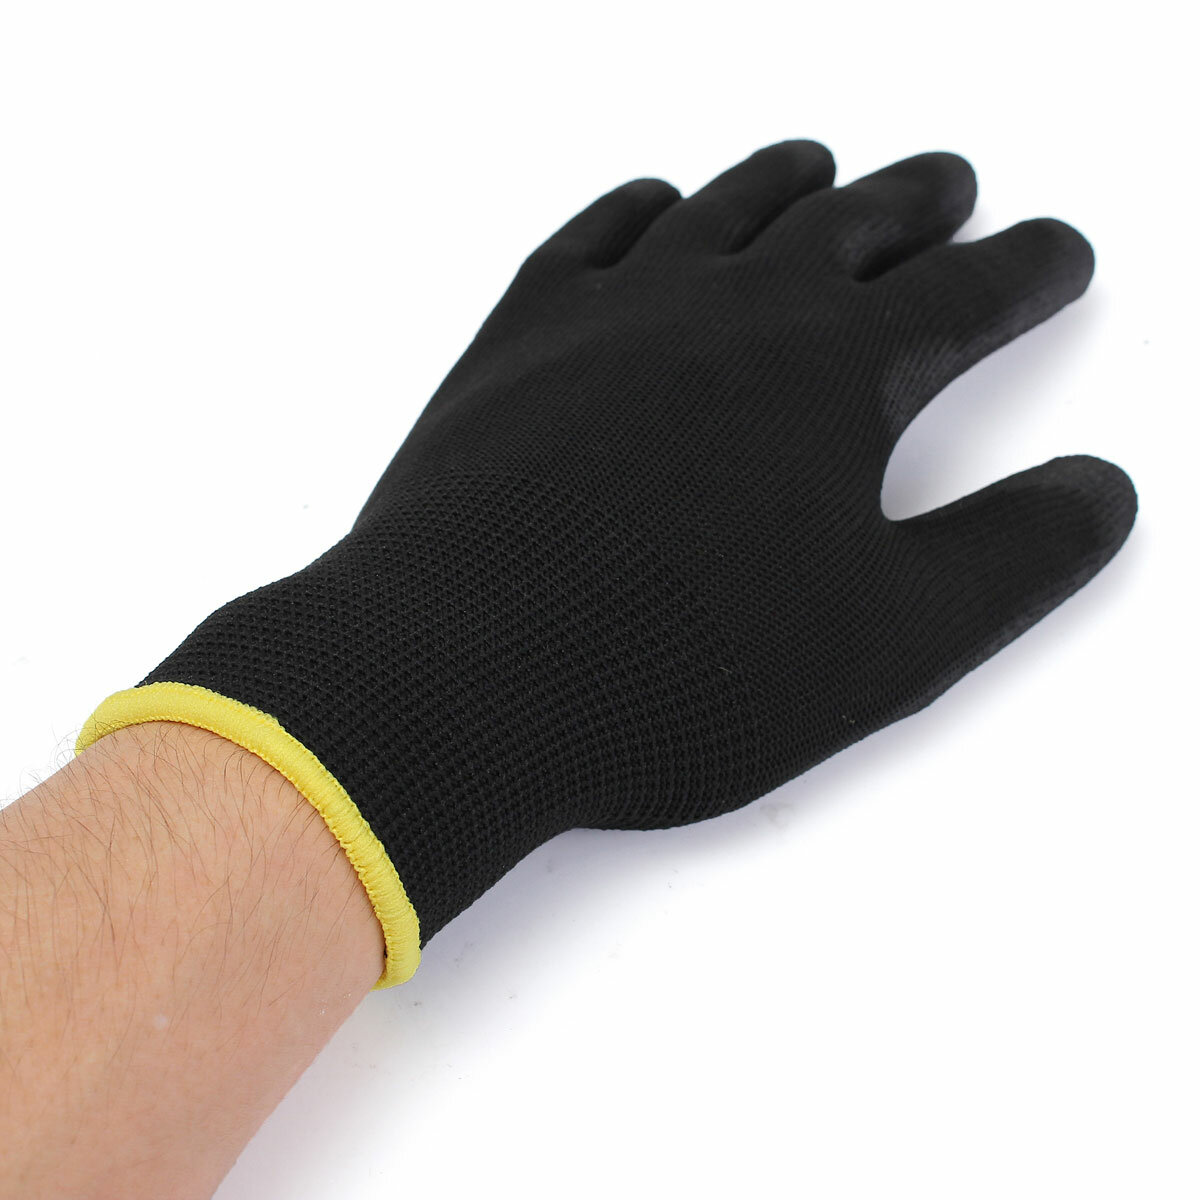 12 Pairs Black PU Safety Work Glove Builders Protect Palm Coating Gloves S/M /L Option